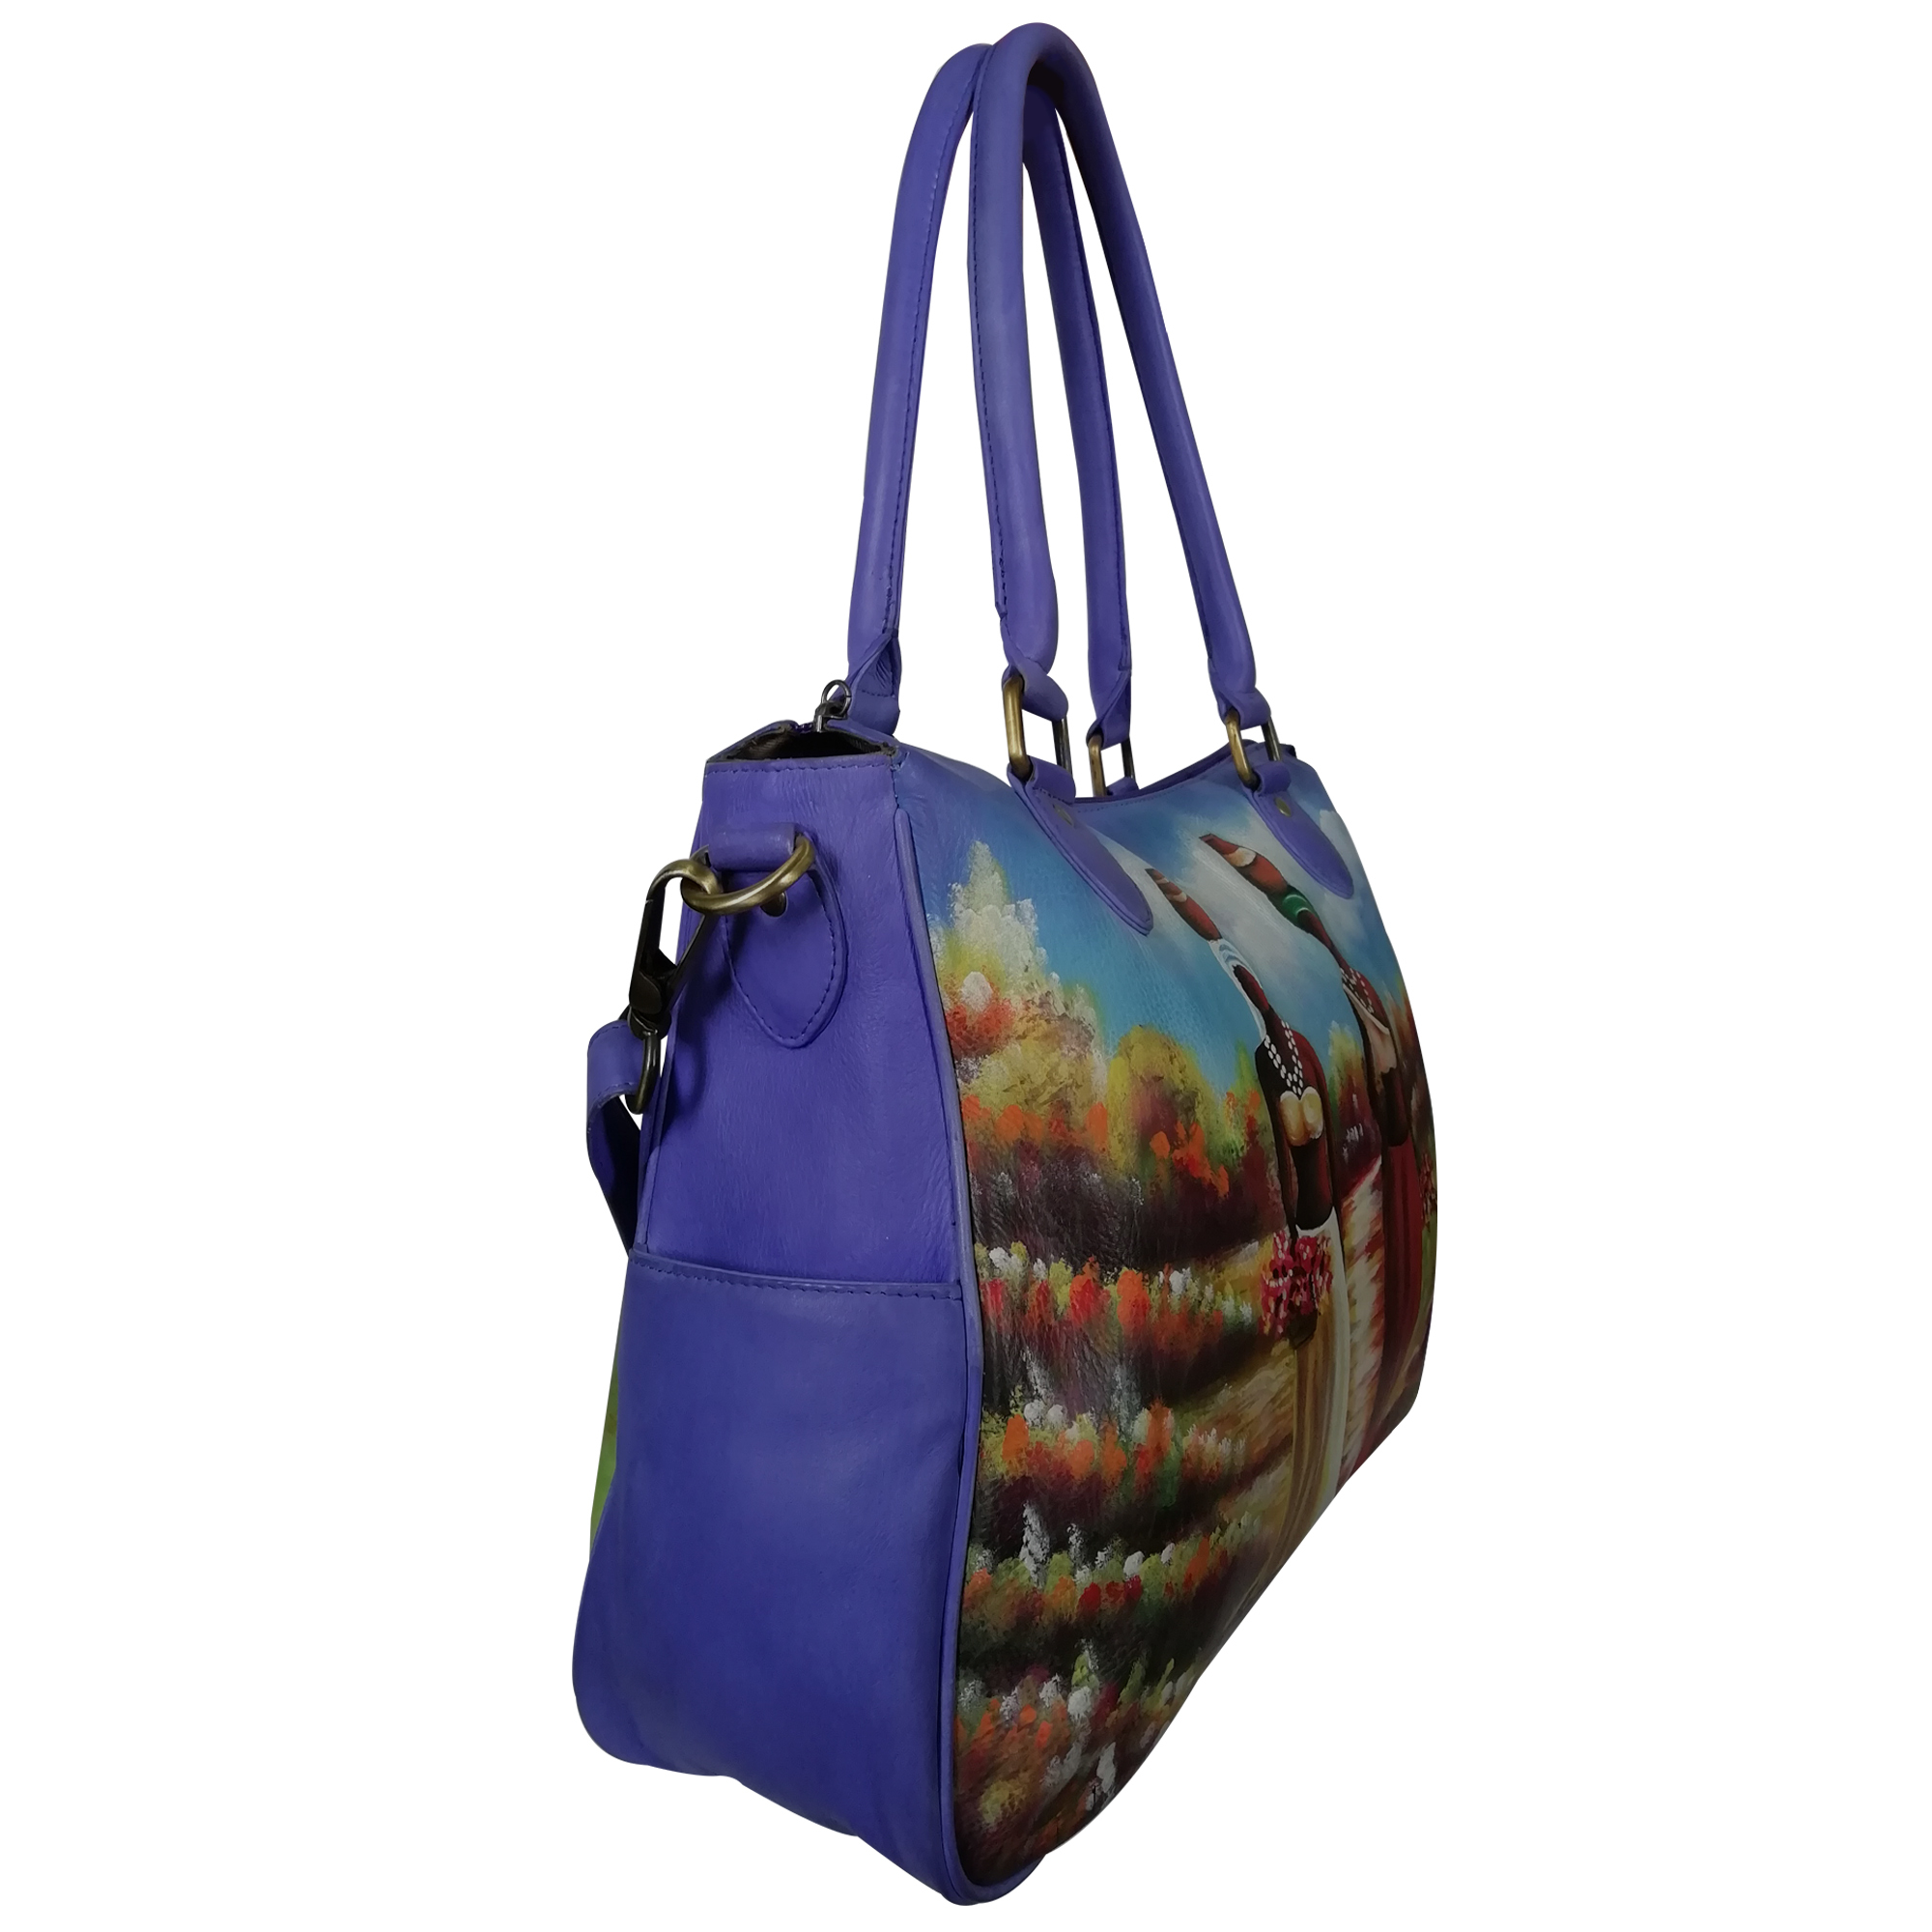 New Hand Painted Leather Shoulder Handbag For Women